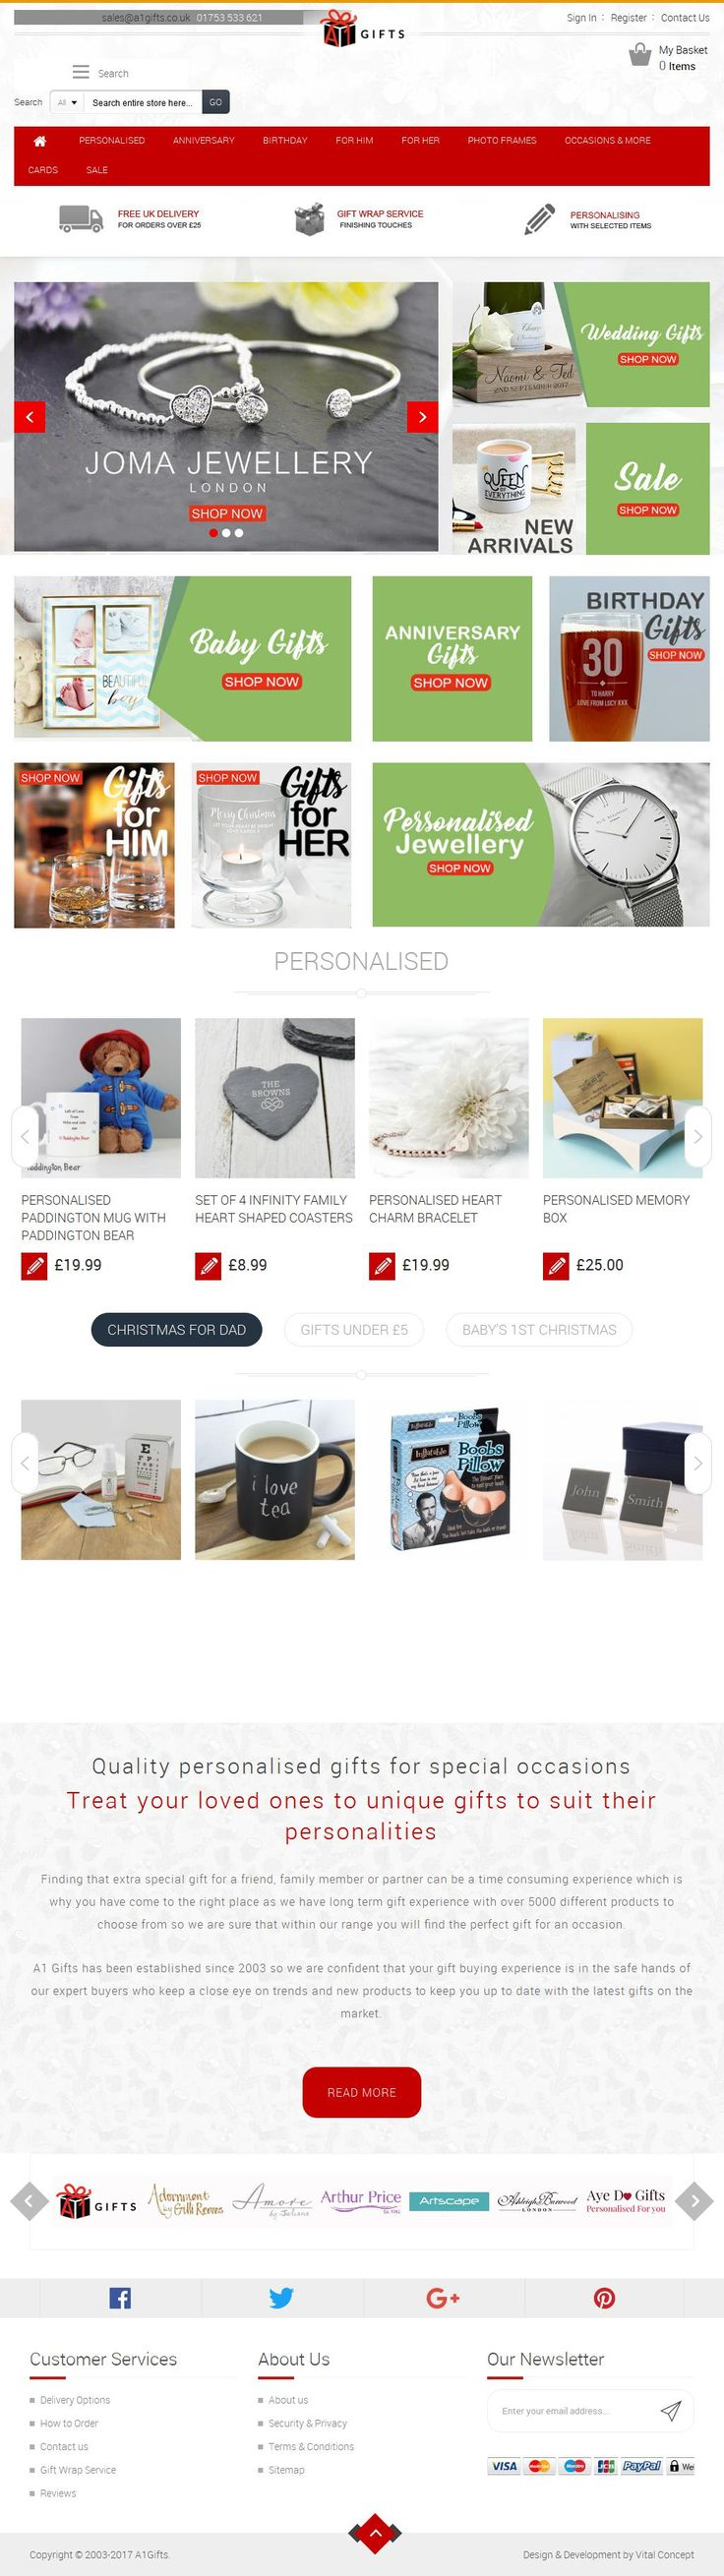 A1 Gifts Lift Gift Services & Gift Packs Ivy Arch Road   Worthing West Sussex BN14 8BX | To get more infomration about A1 Gifts Lift, Location Map, Phone numbers, Email, Website please visit http://www.HaiUK.co.uk